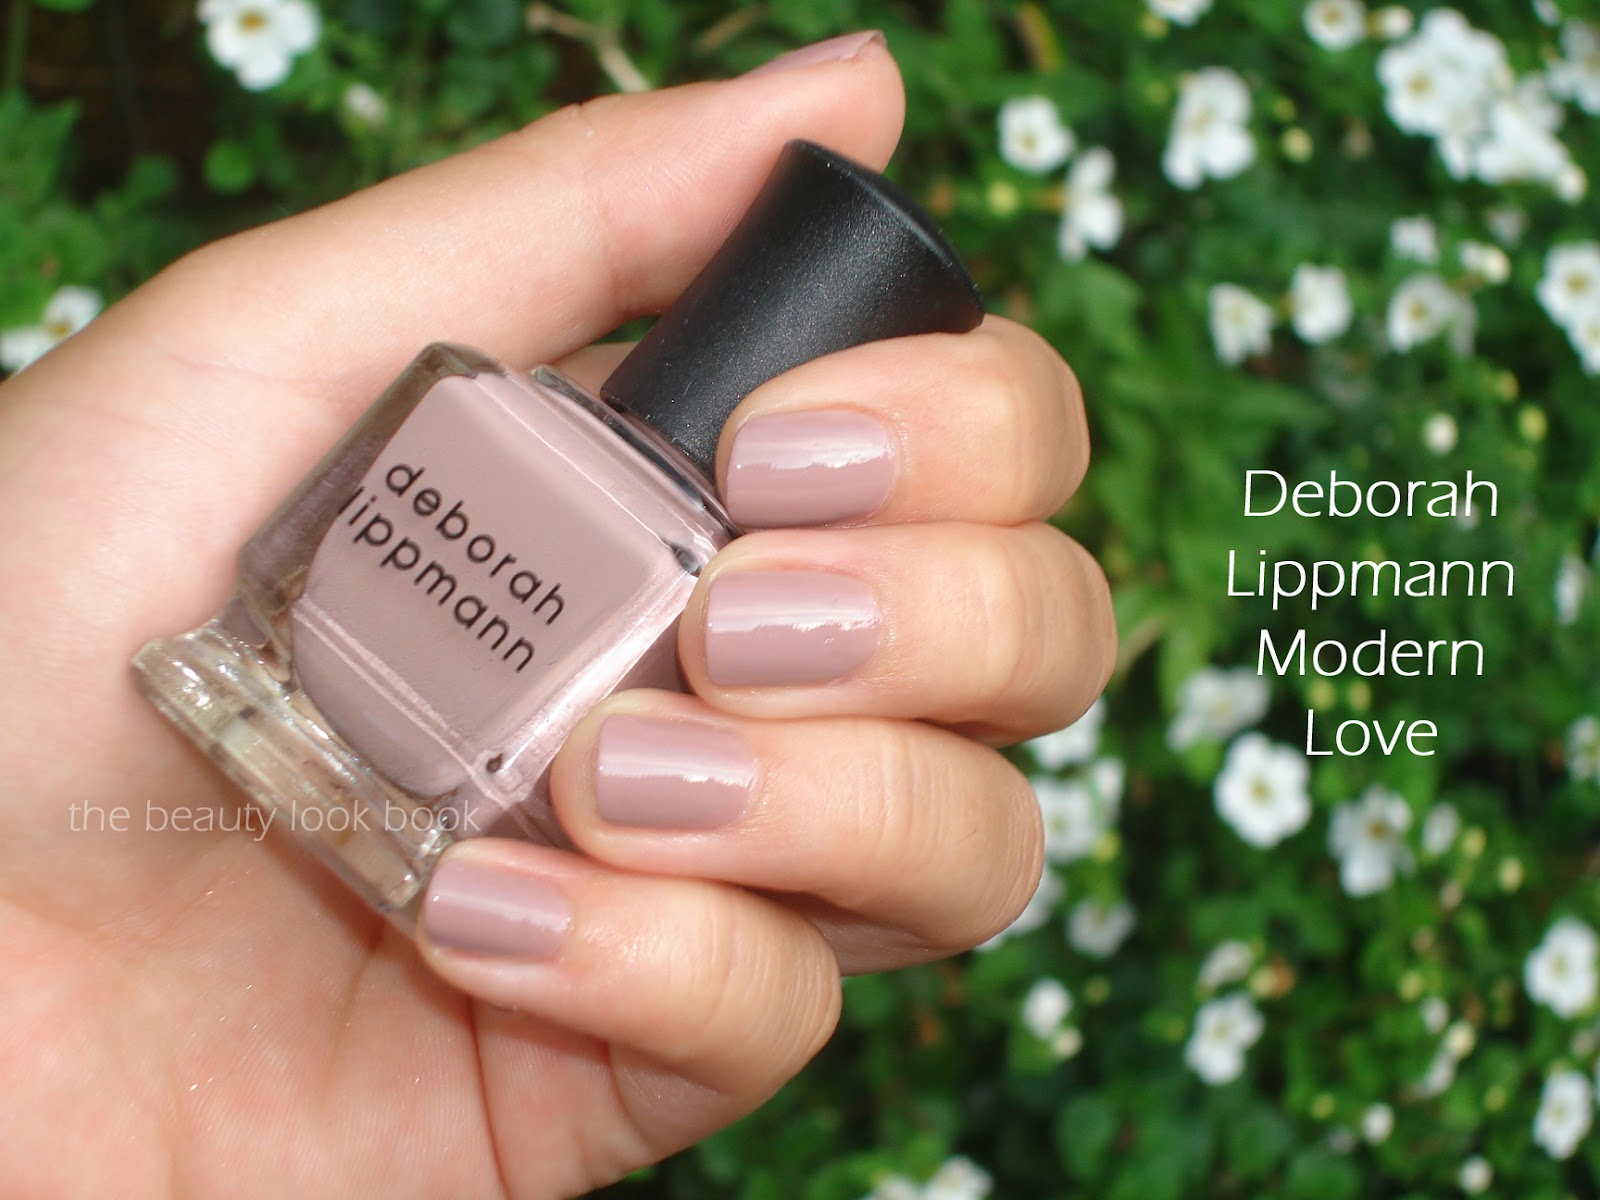 Deborah Lippmann Modern Love | The Beauty Look Book